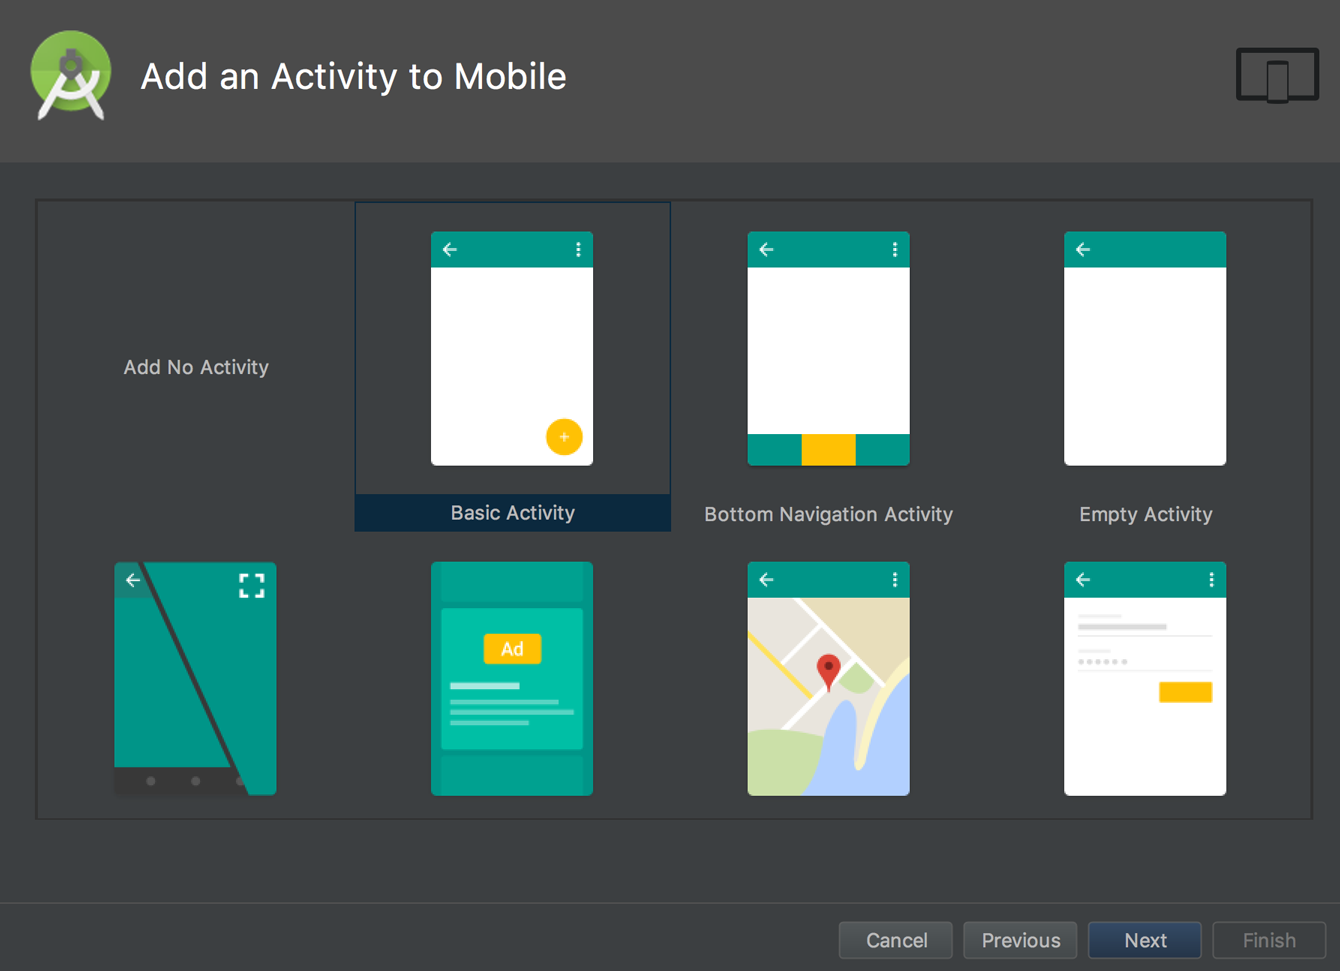 Jump start the application by adding an activity